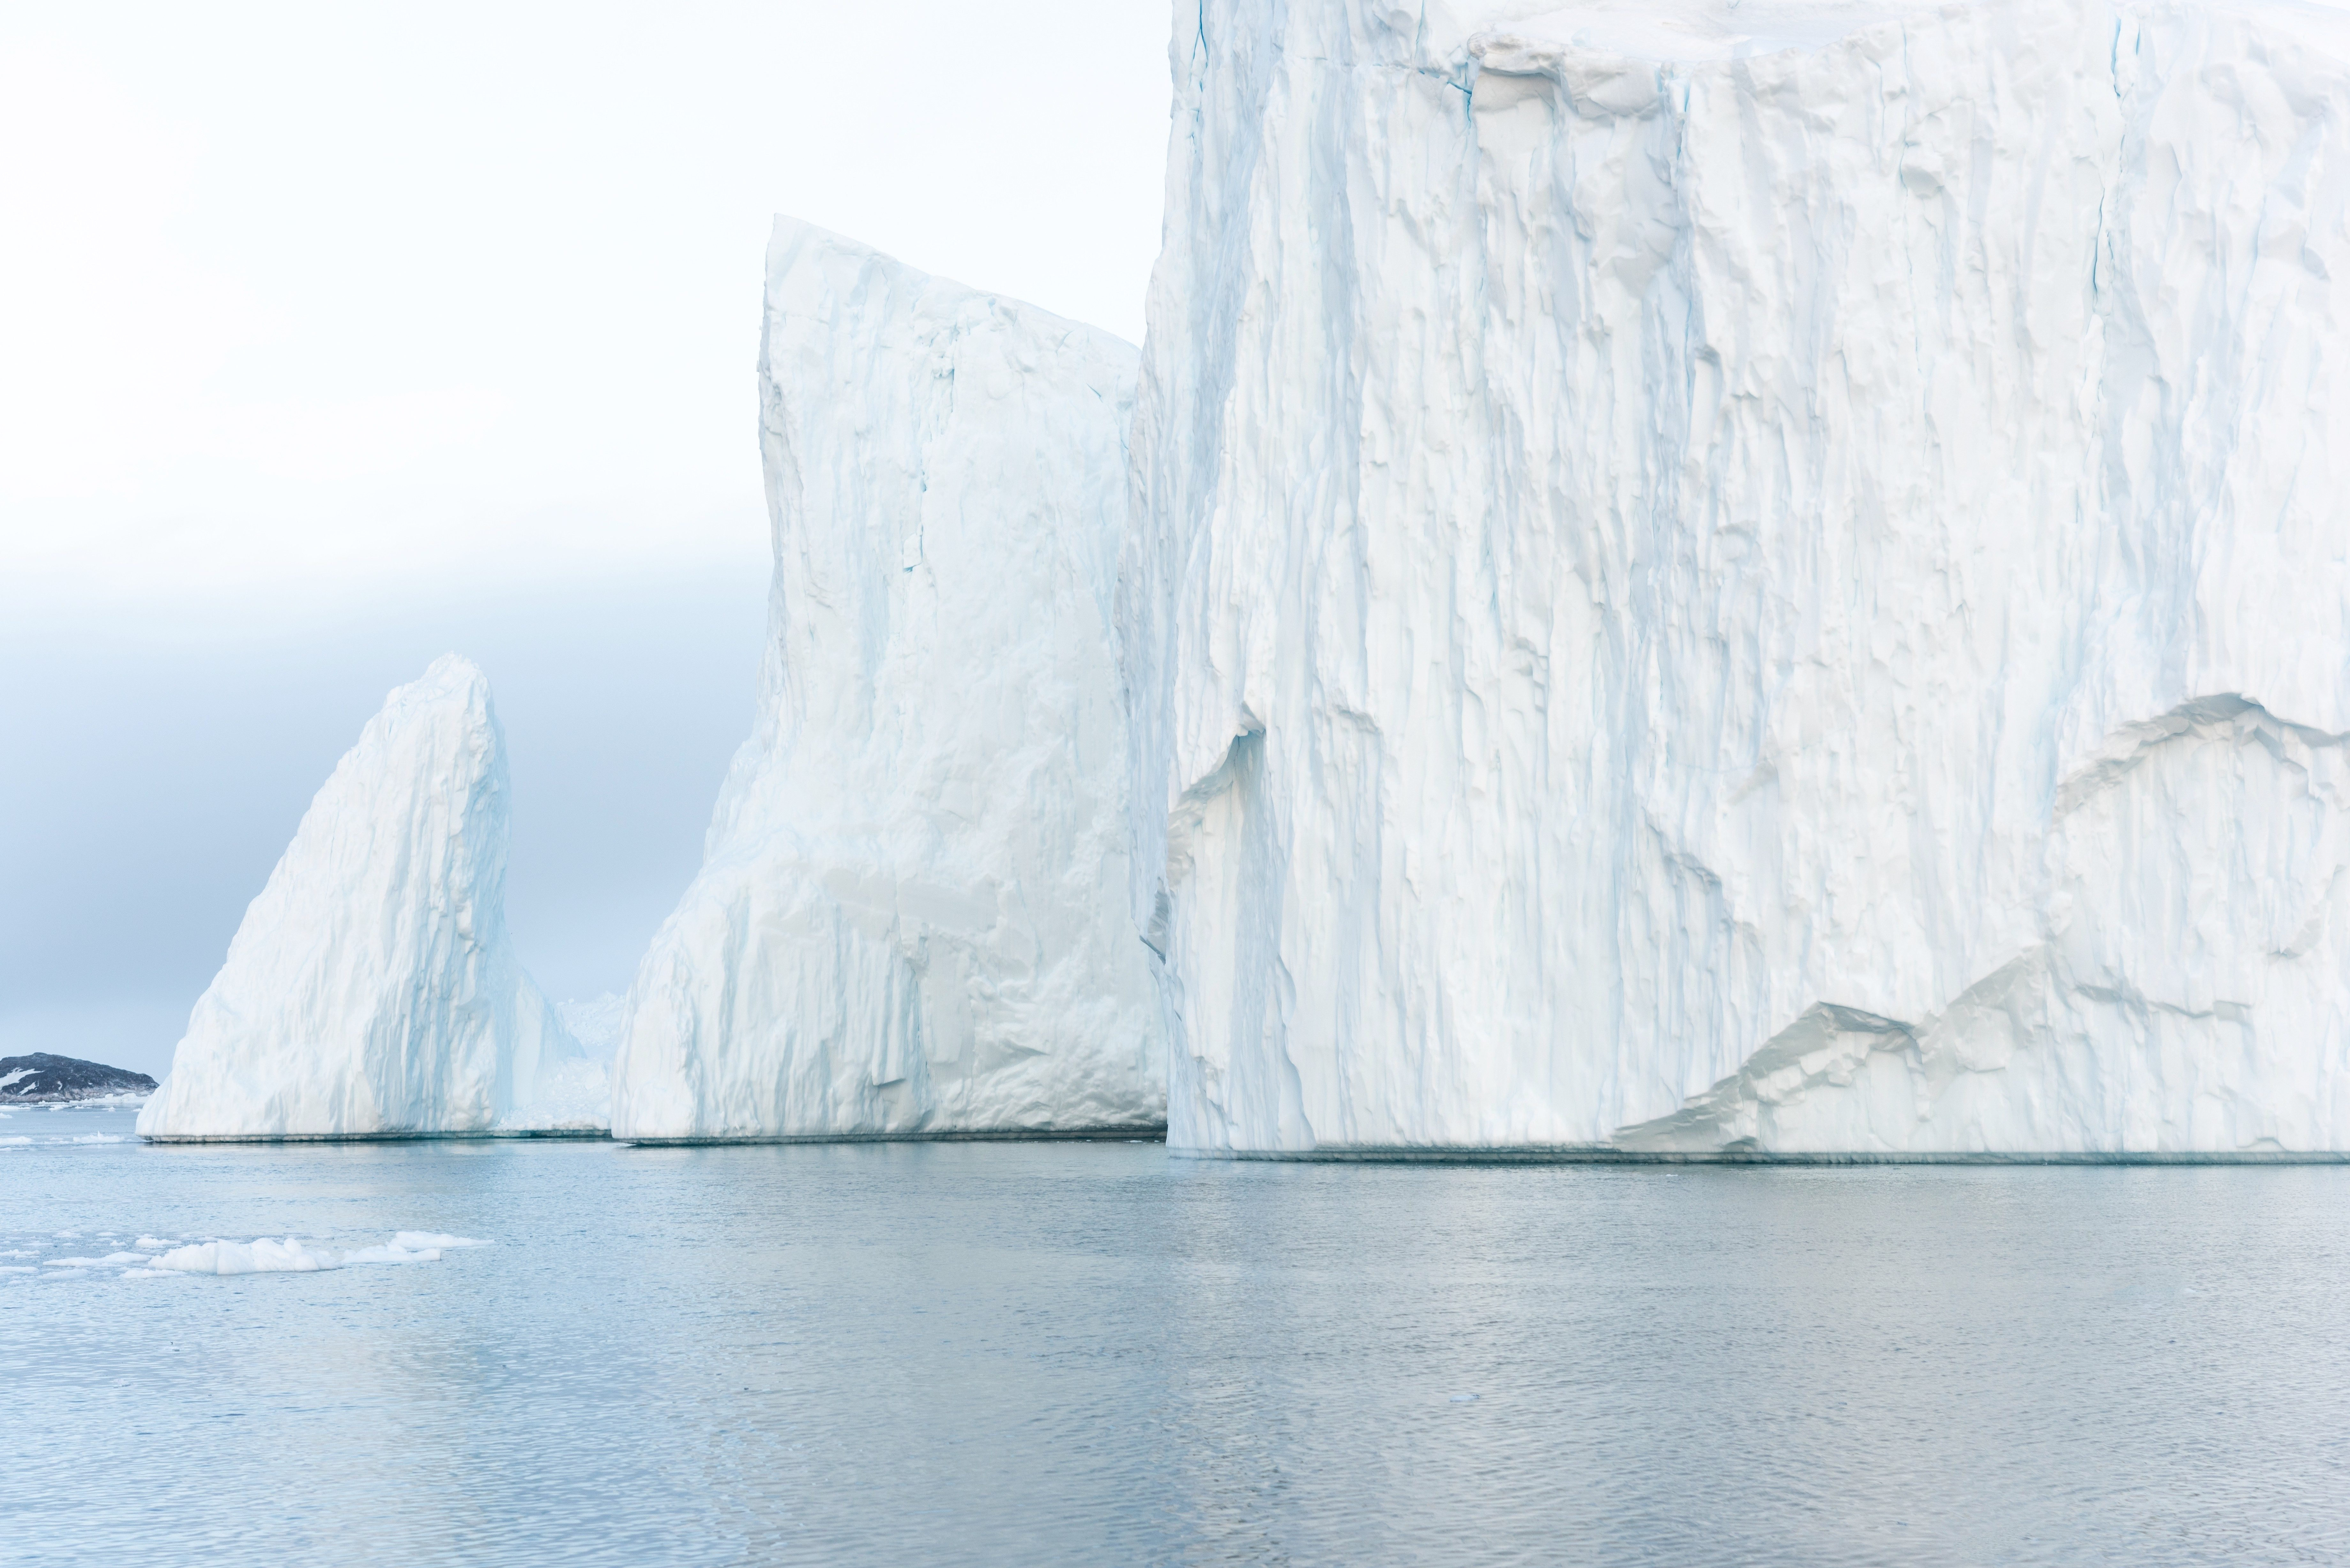 Arctic Icebergs on Arctic Ocean in Greenland